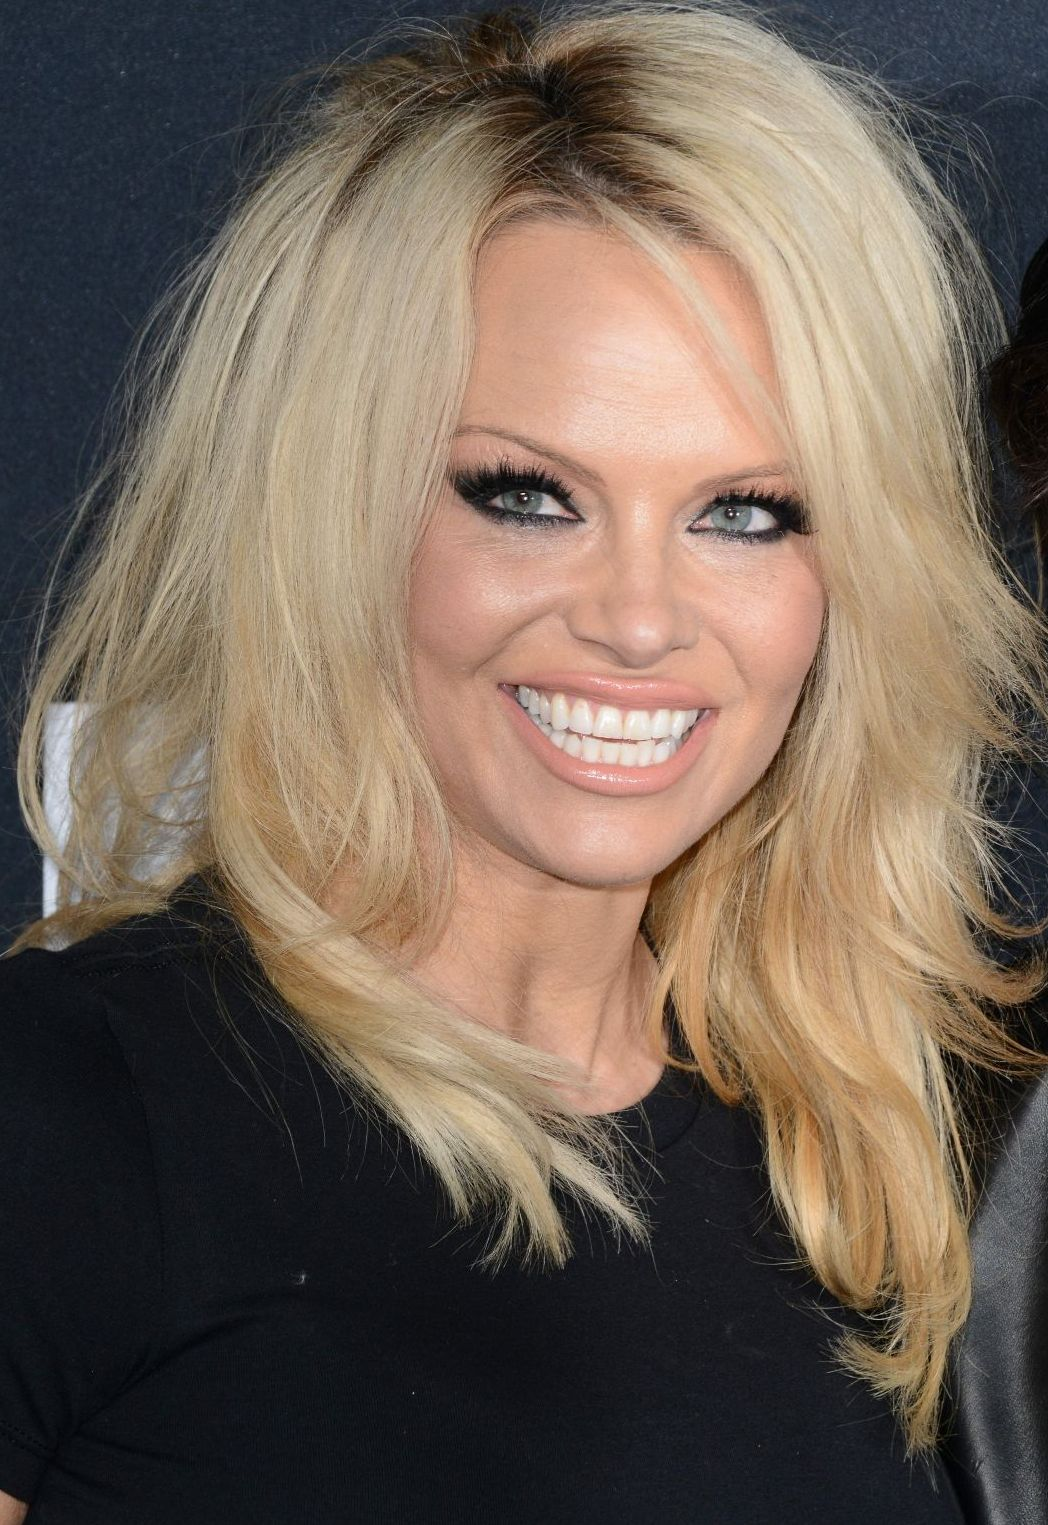 Pamela Anderson born July 1, 1967 (age 51) Pamela Anderson born July 1, 1967 (age 51) new pics